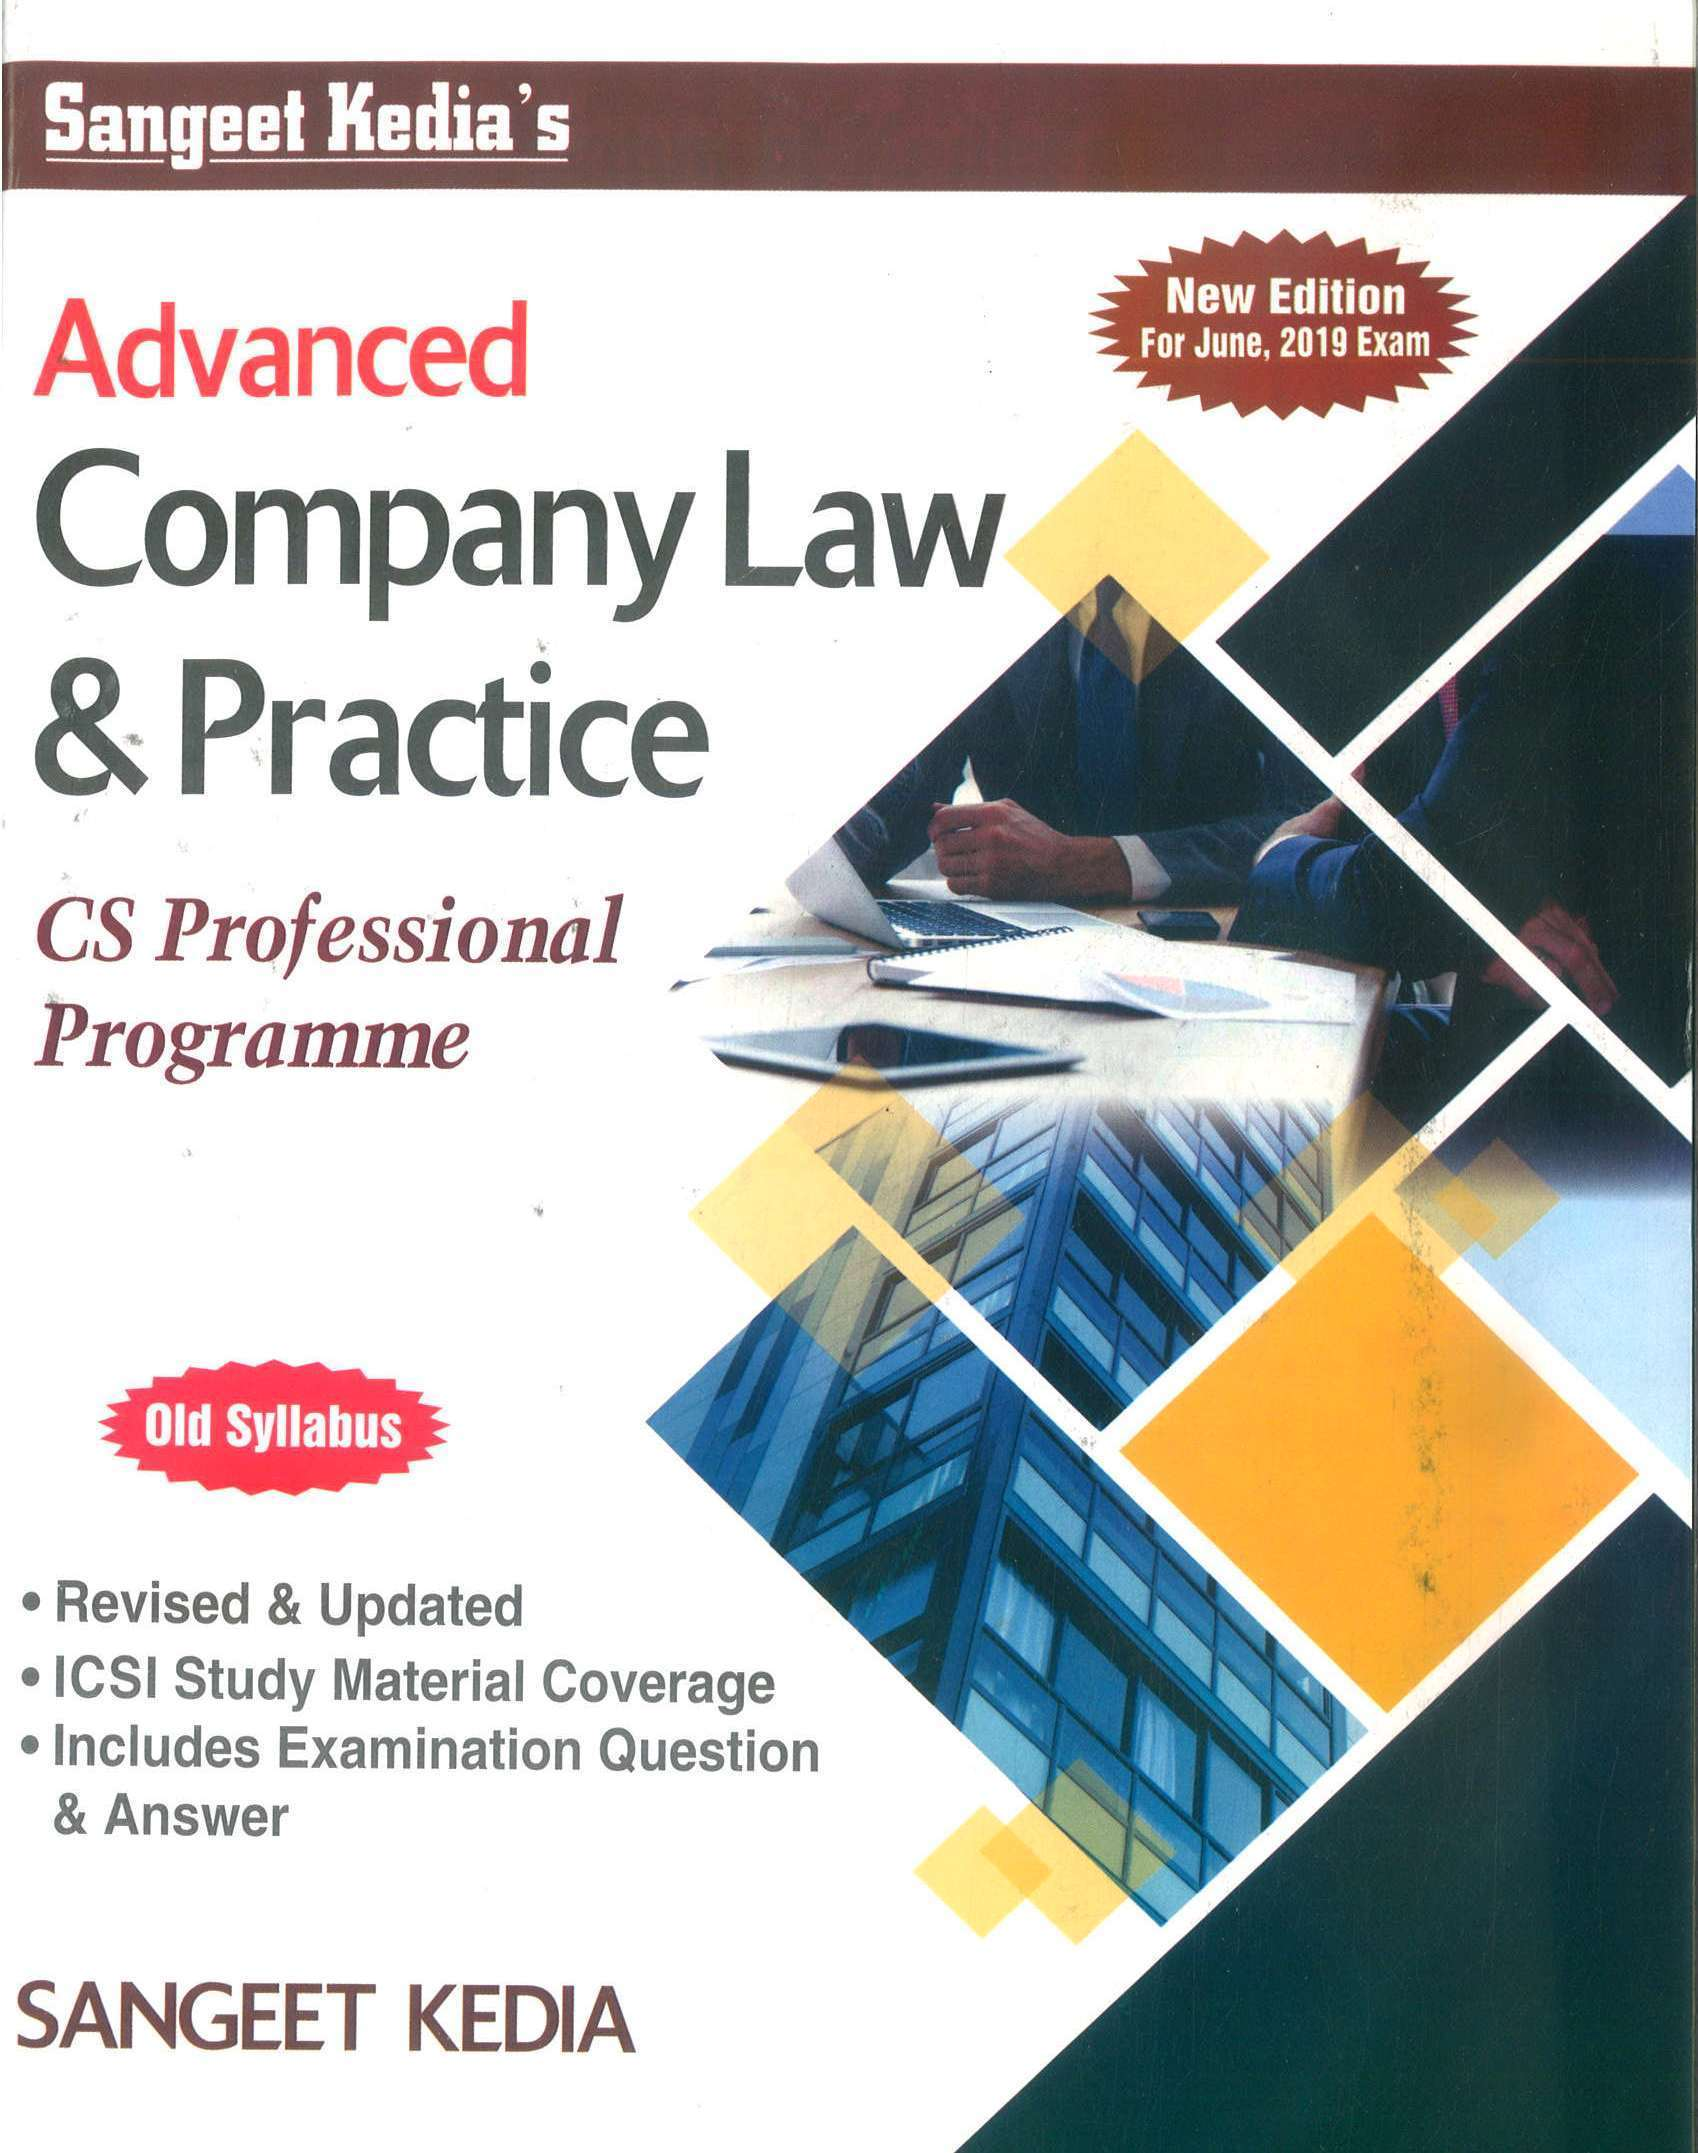 Sangeet Kedia Advanced Company Law & Practice old syllabus for CS Professional Programme by Sangeet Kedia (Pooja Law House Publishing)for june 2020